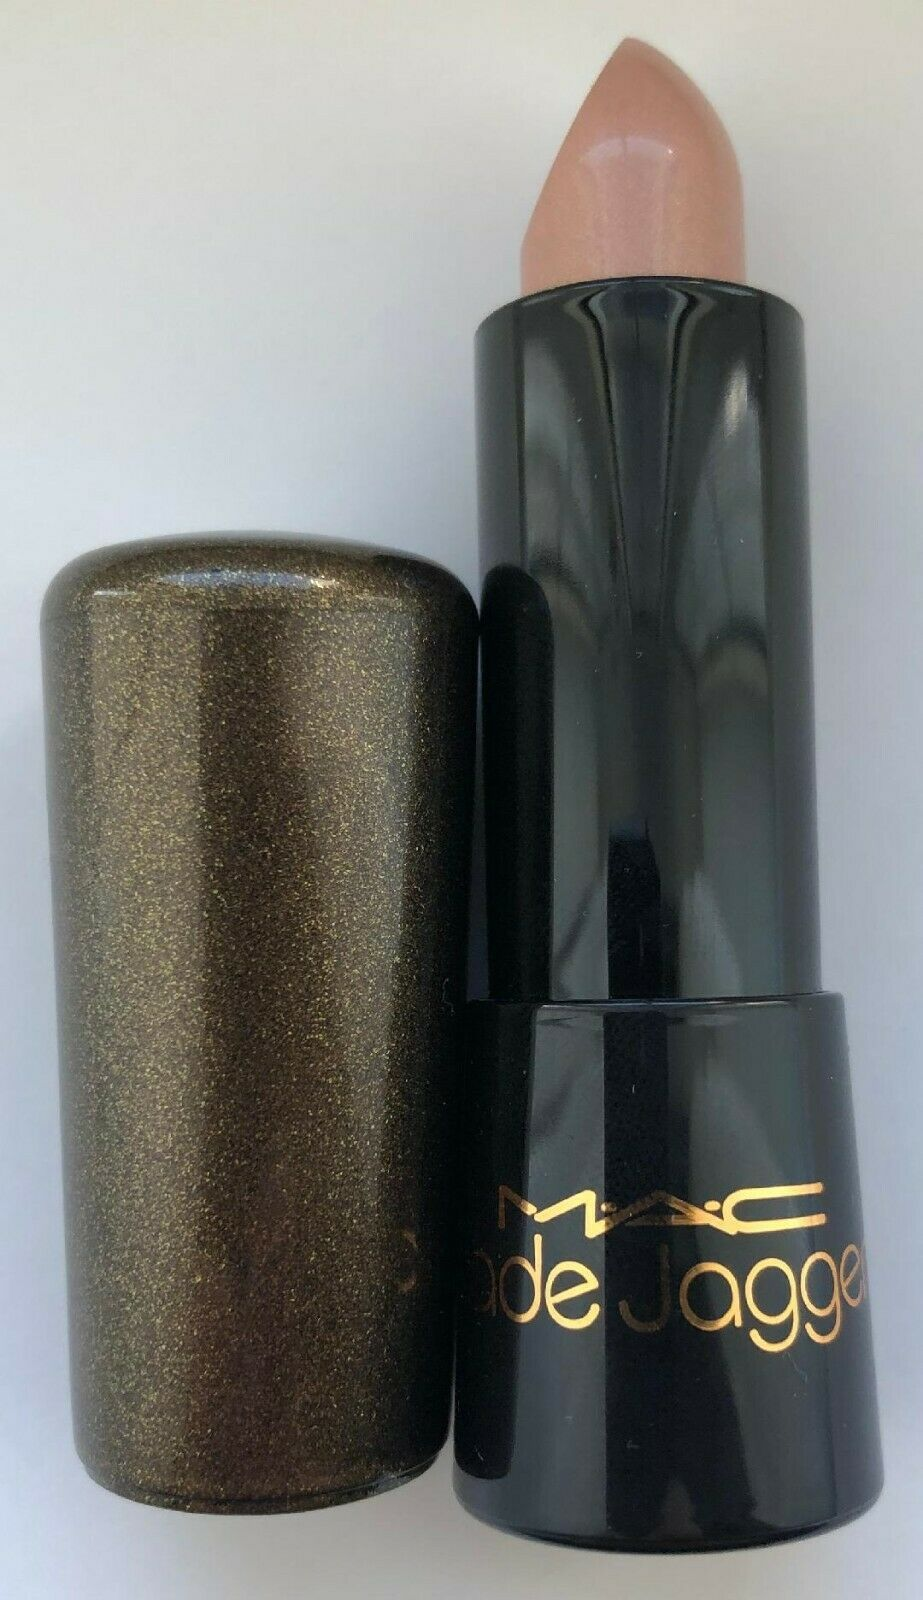 Primary image for MAC JADE JAGGER MINERALIZE RICH LIPSTICK ~ OPAL BEACH ~ NO BOX